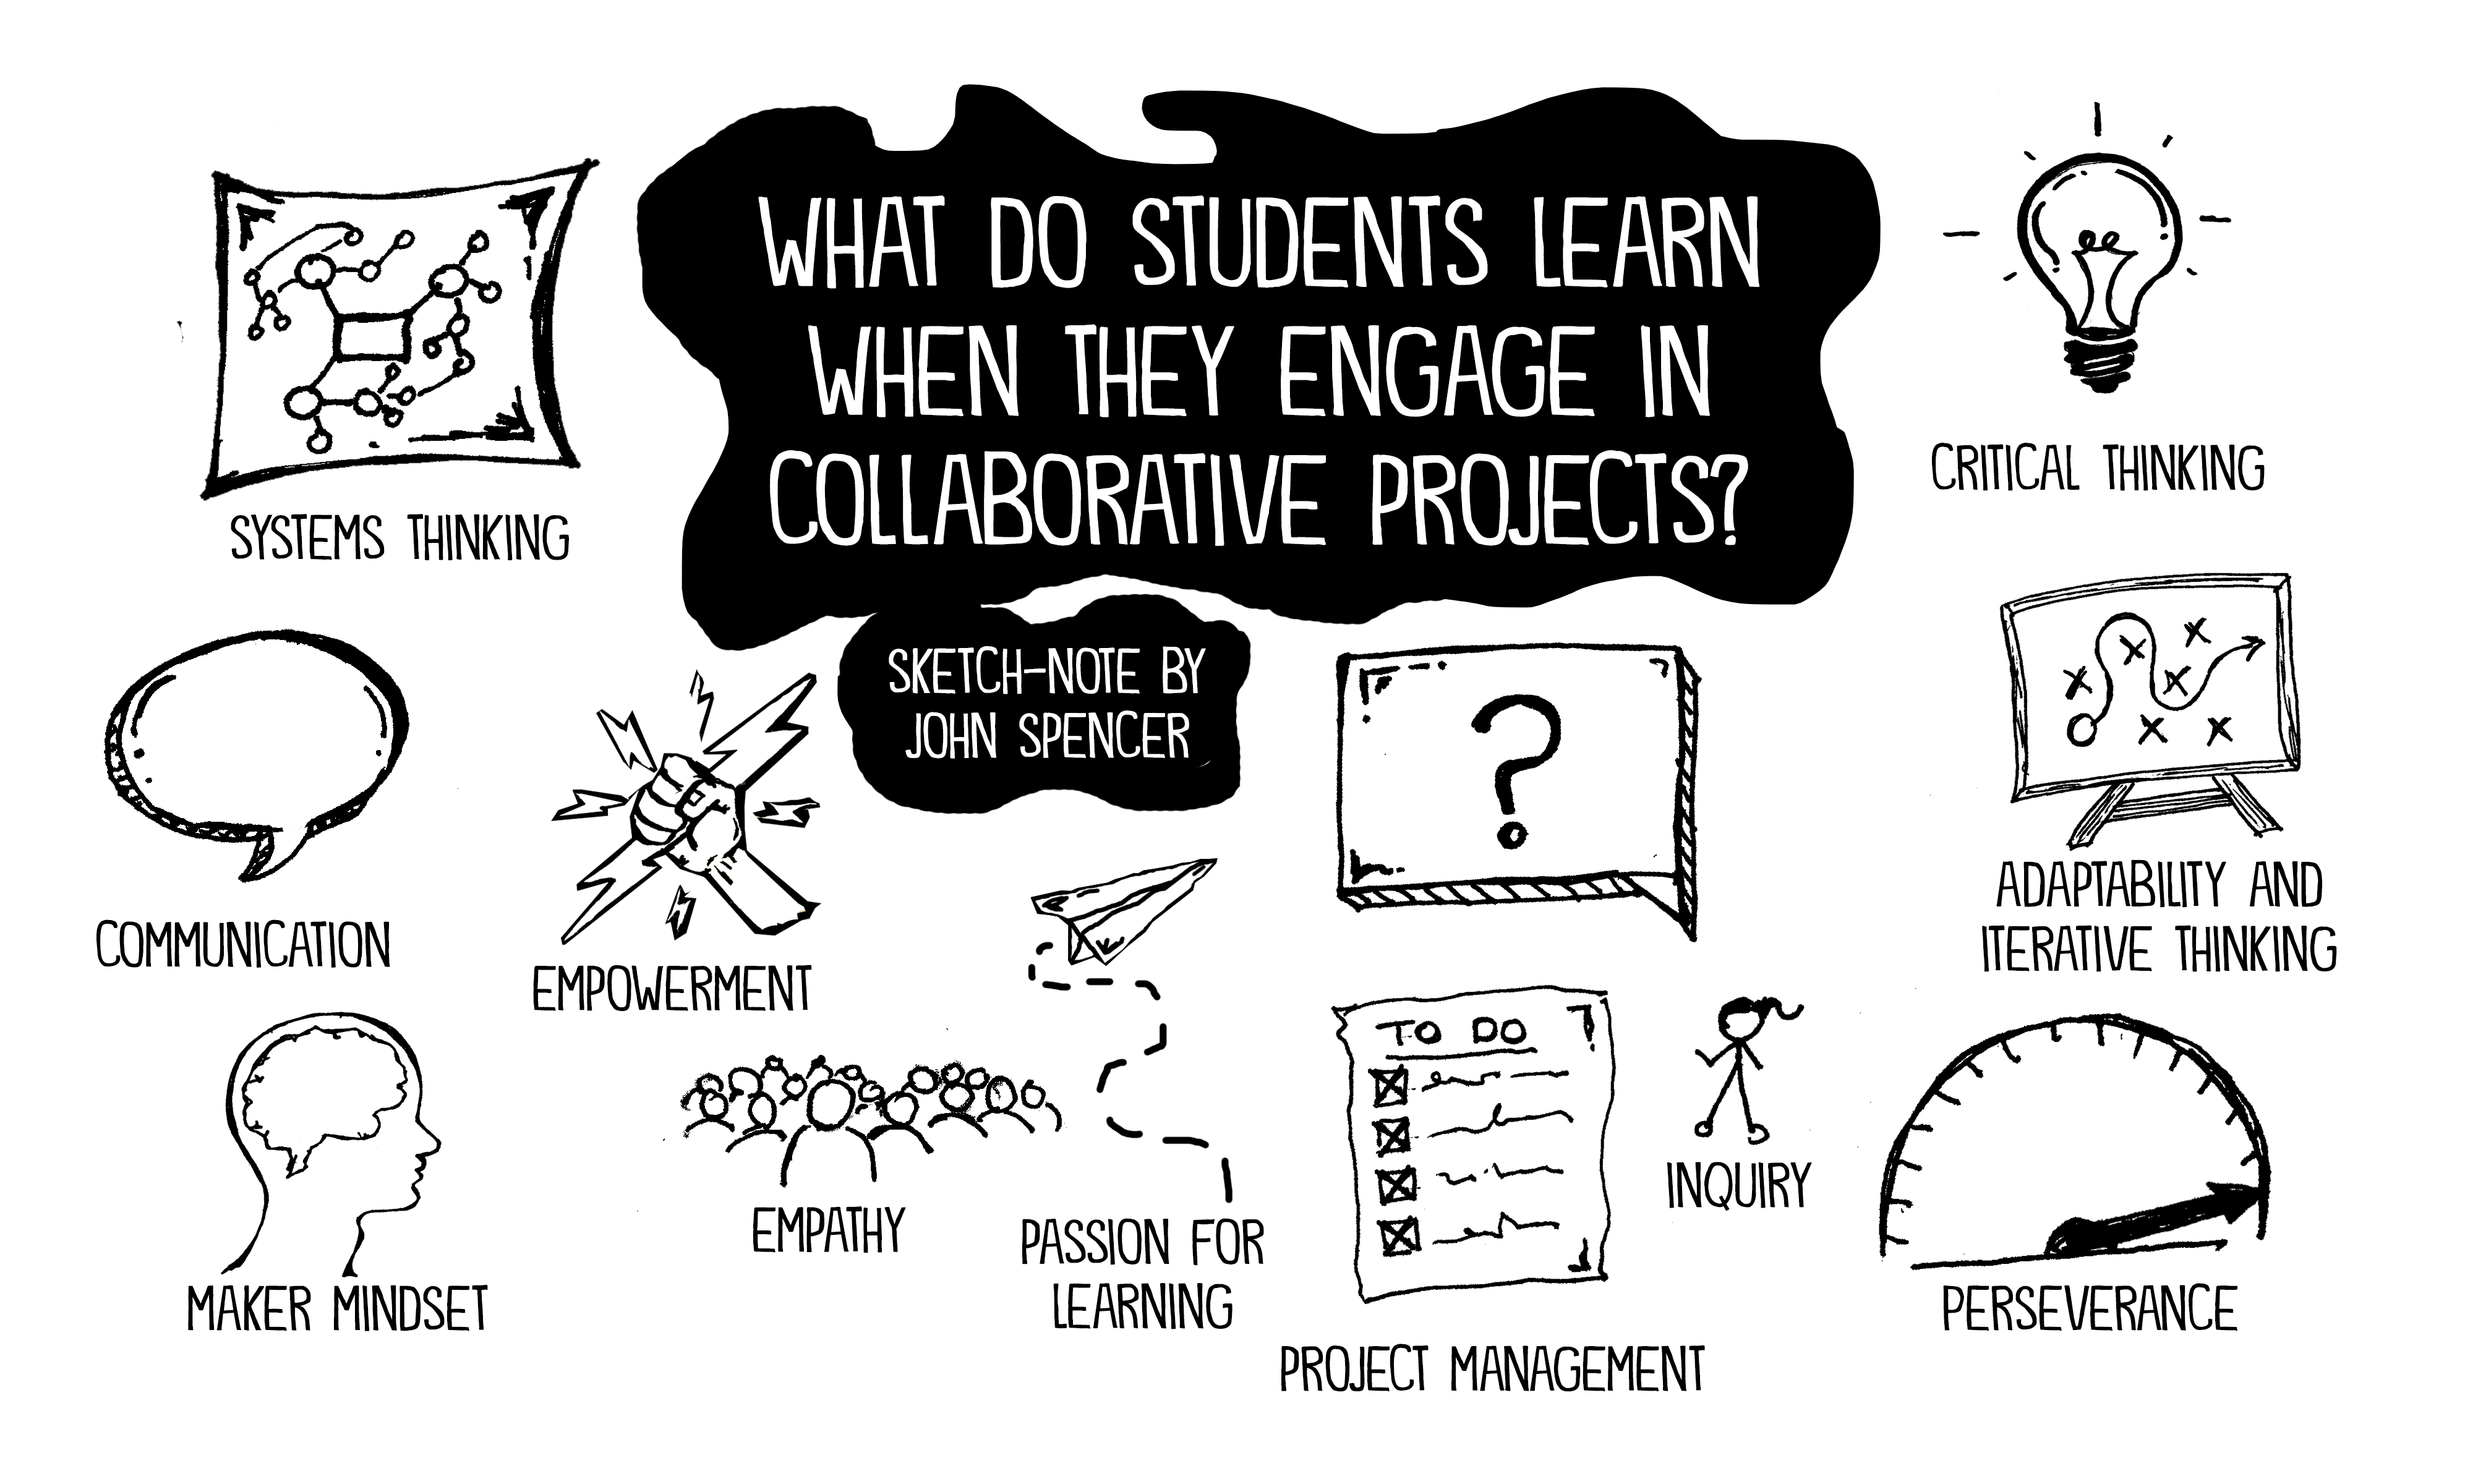 If we say we want students to become critical thinking